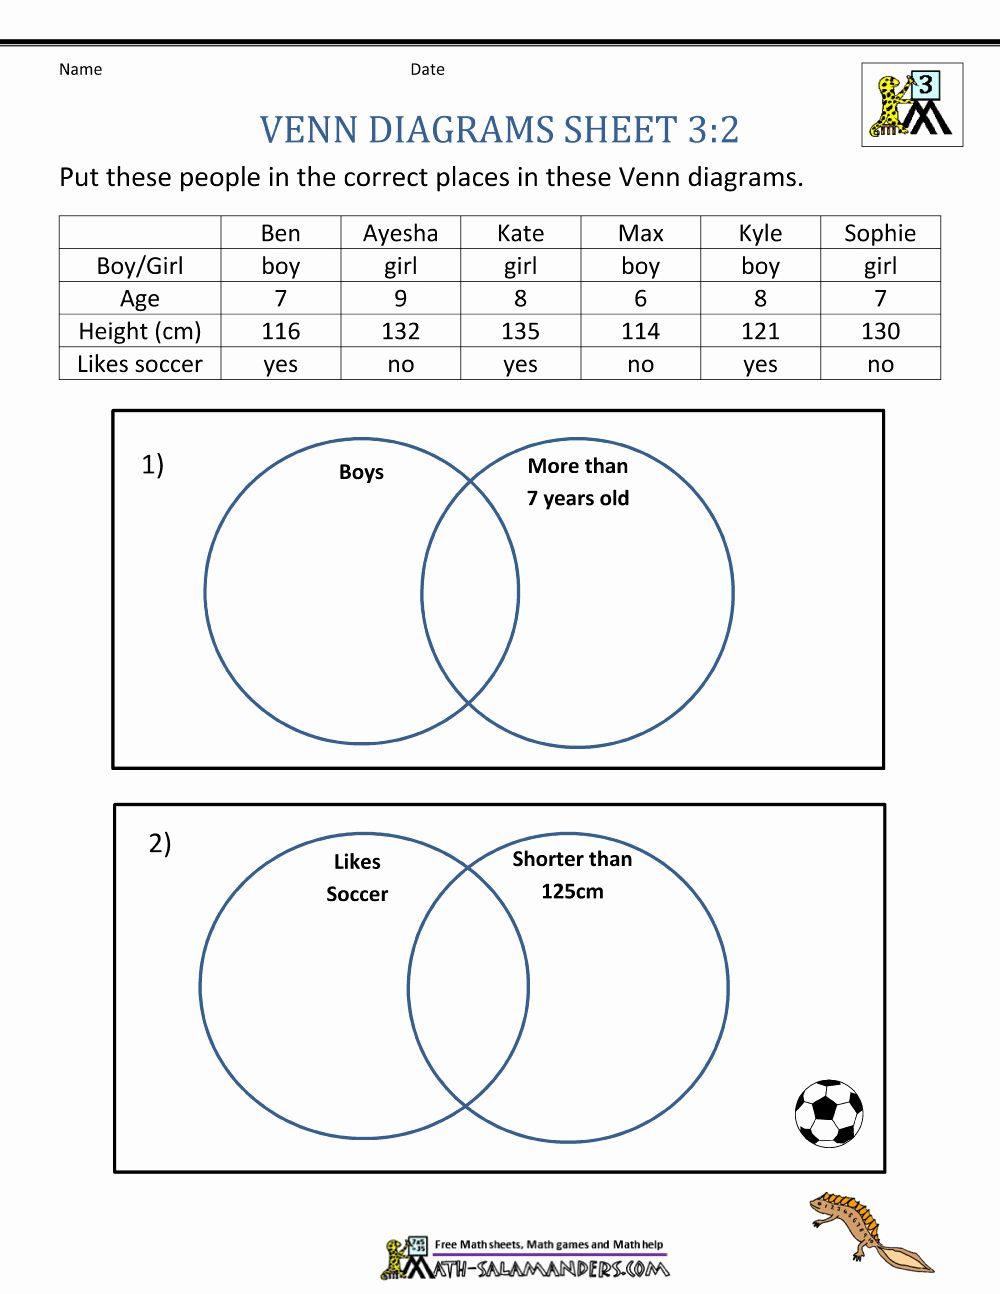 6 Venn Diagram Word Problems With 3 Circles In 2020 Manual Guide